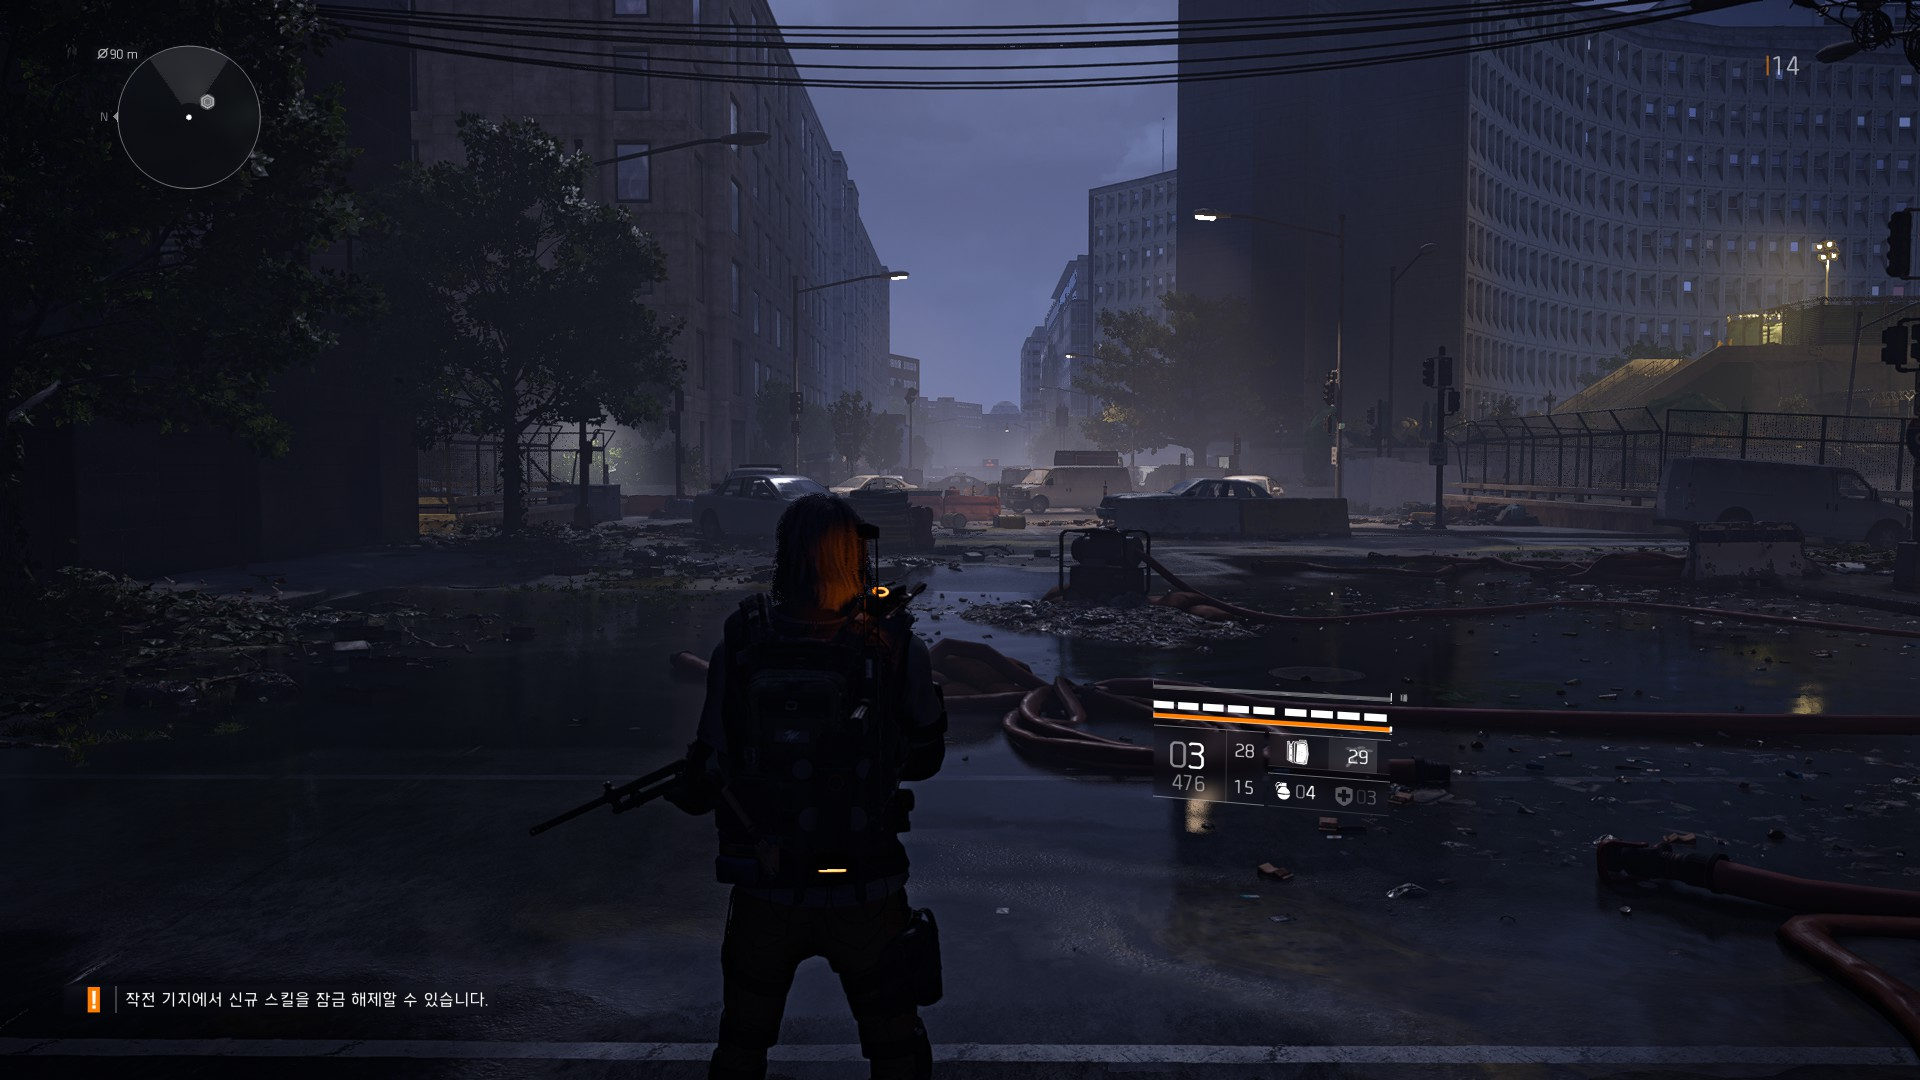 Tom Clancy's The Division® 22019-3-29-20-55-56.jpg